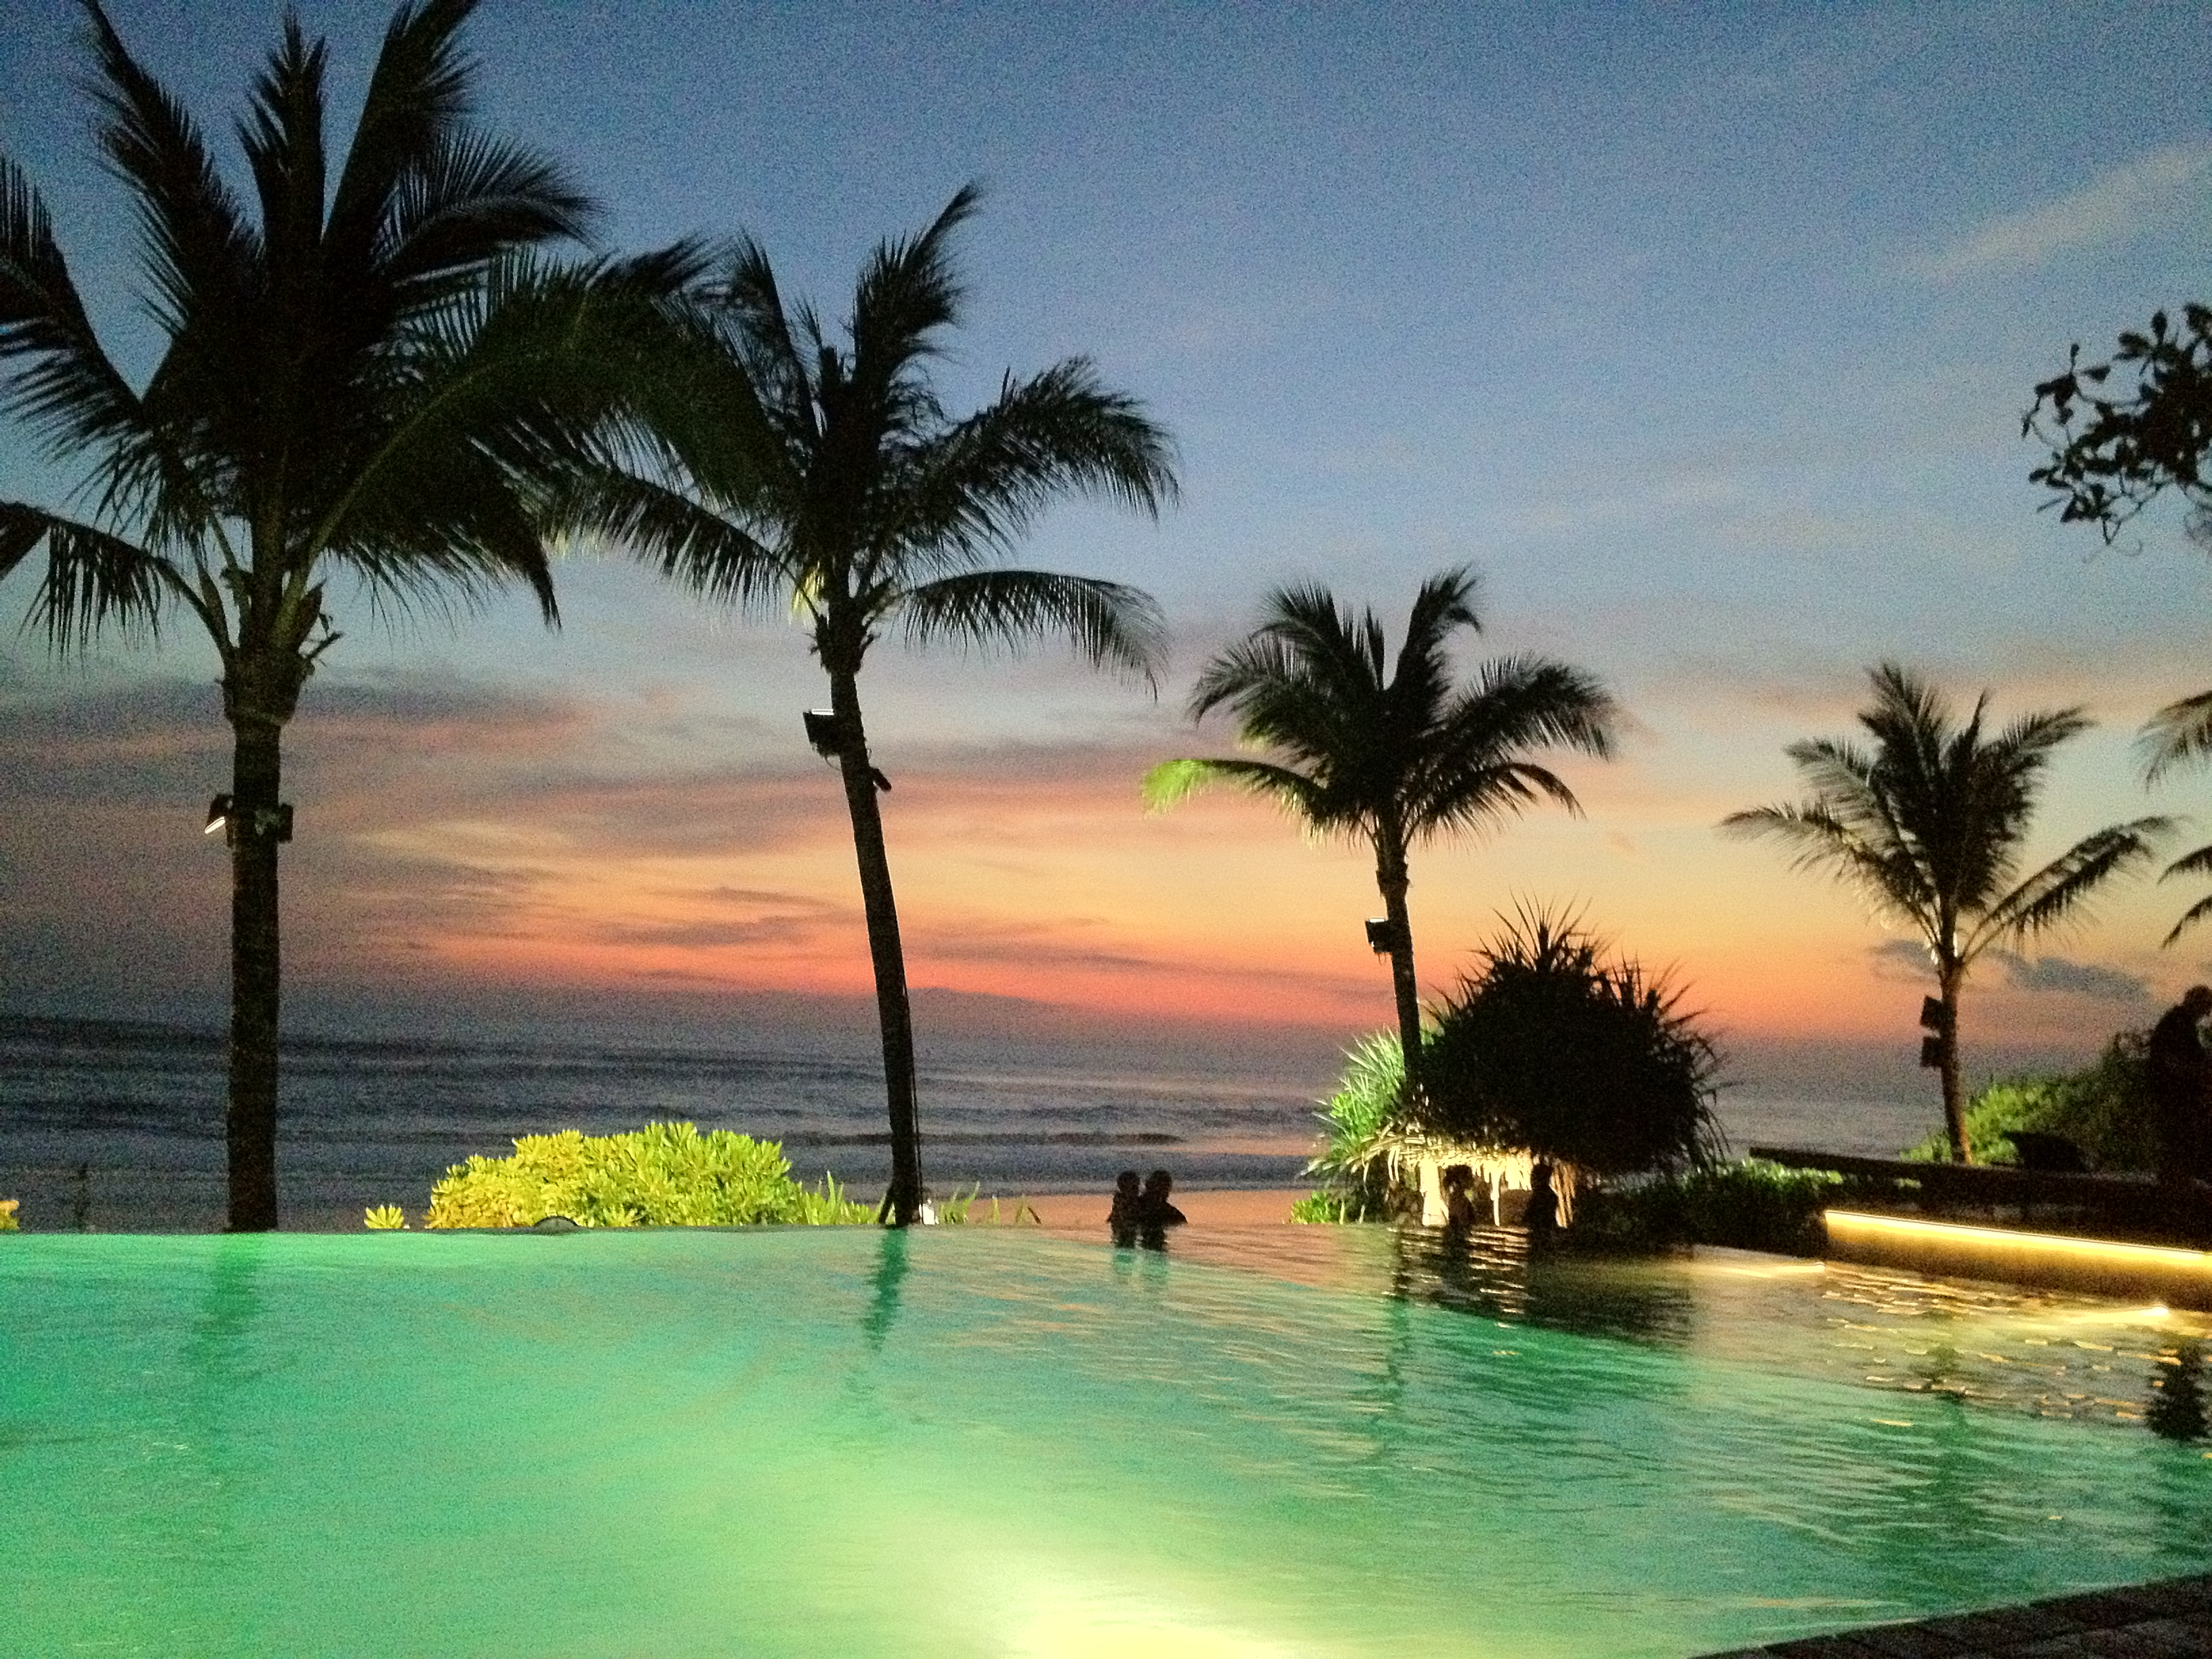 Sunset and infinity pool at Potato Head Beach Club in Seminyak, Bali.